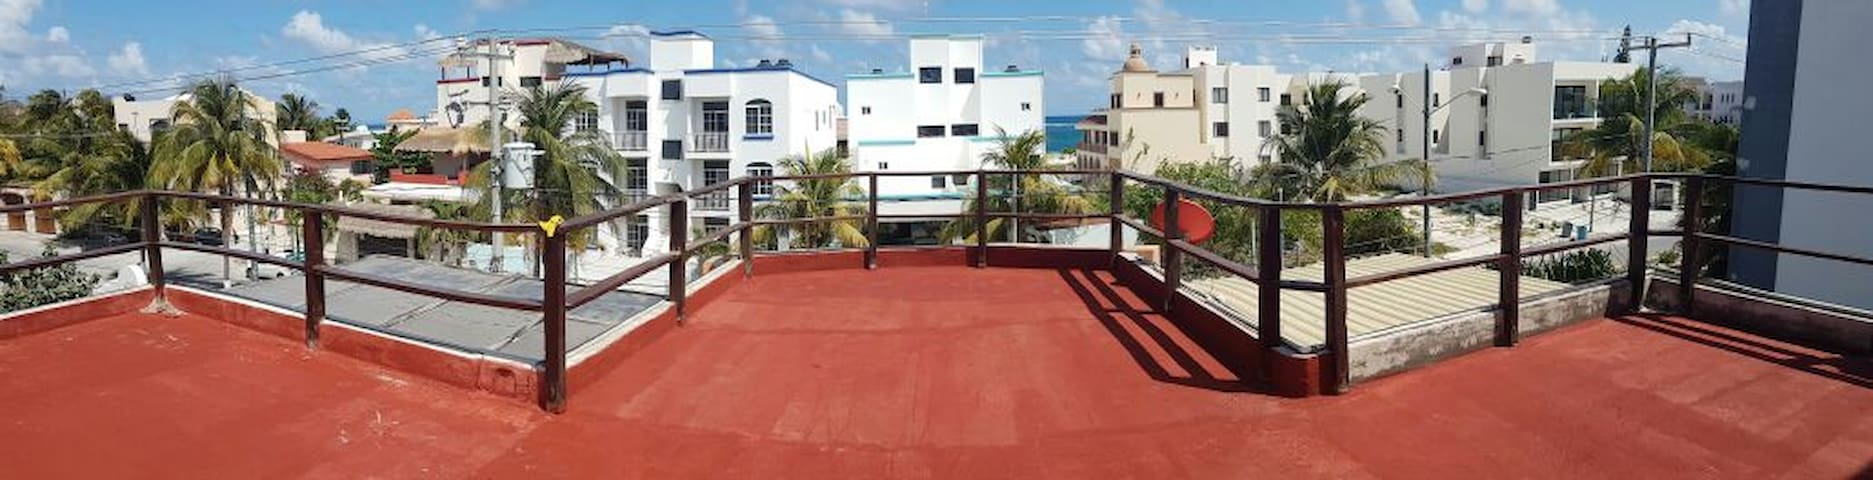 LOVELY AND CONFORTABLE SEAVIEW FLAT - Puerto Morelos - Apartment